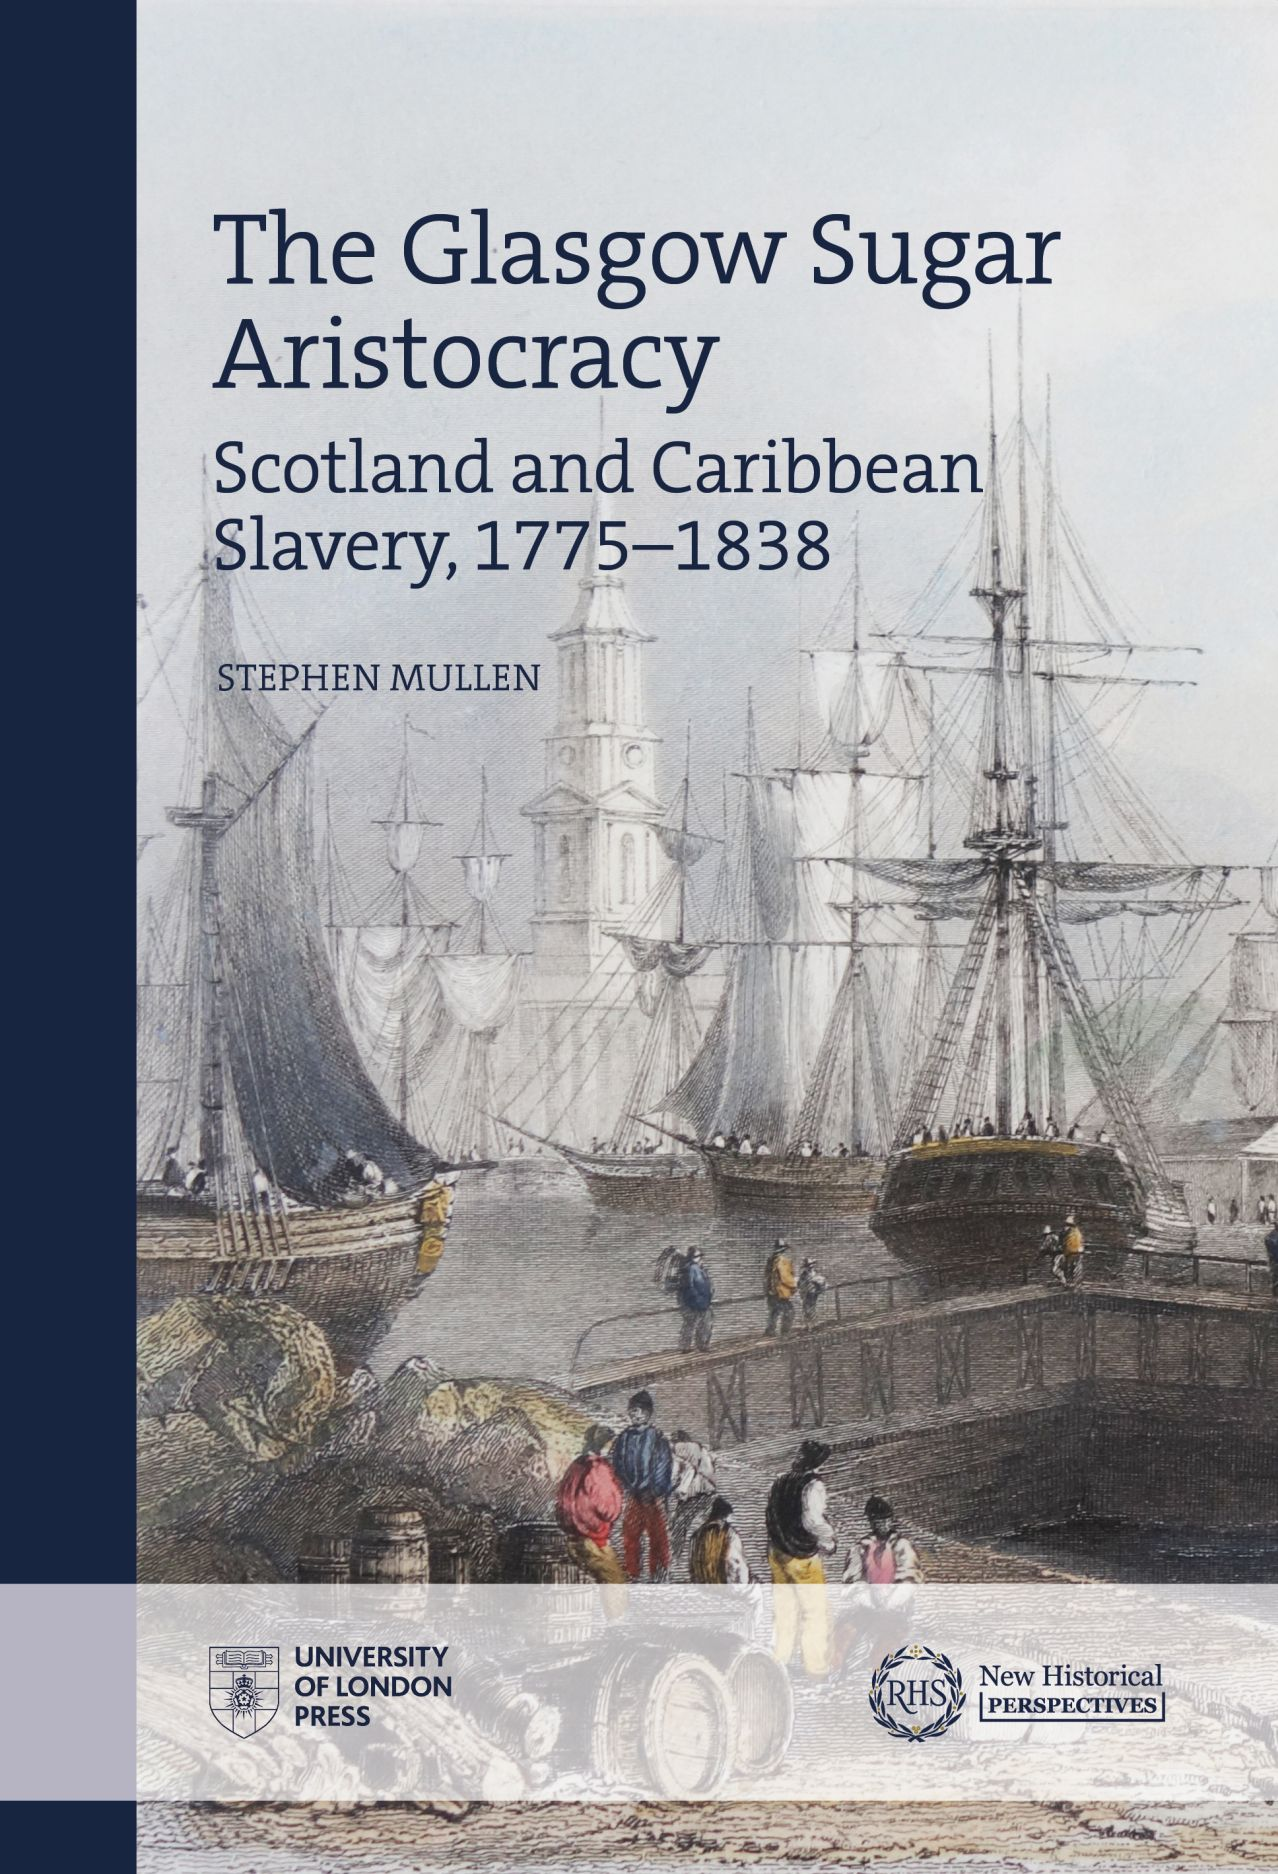 The Glasgow Sugar Aristocracy: Scotland and Caribbean Slavery, 1775-1838